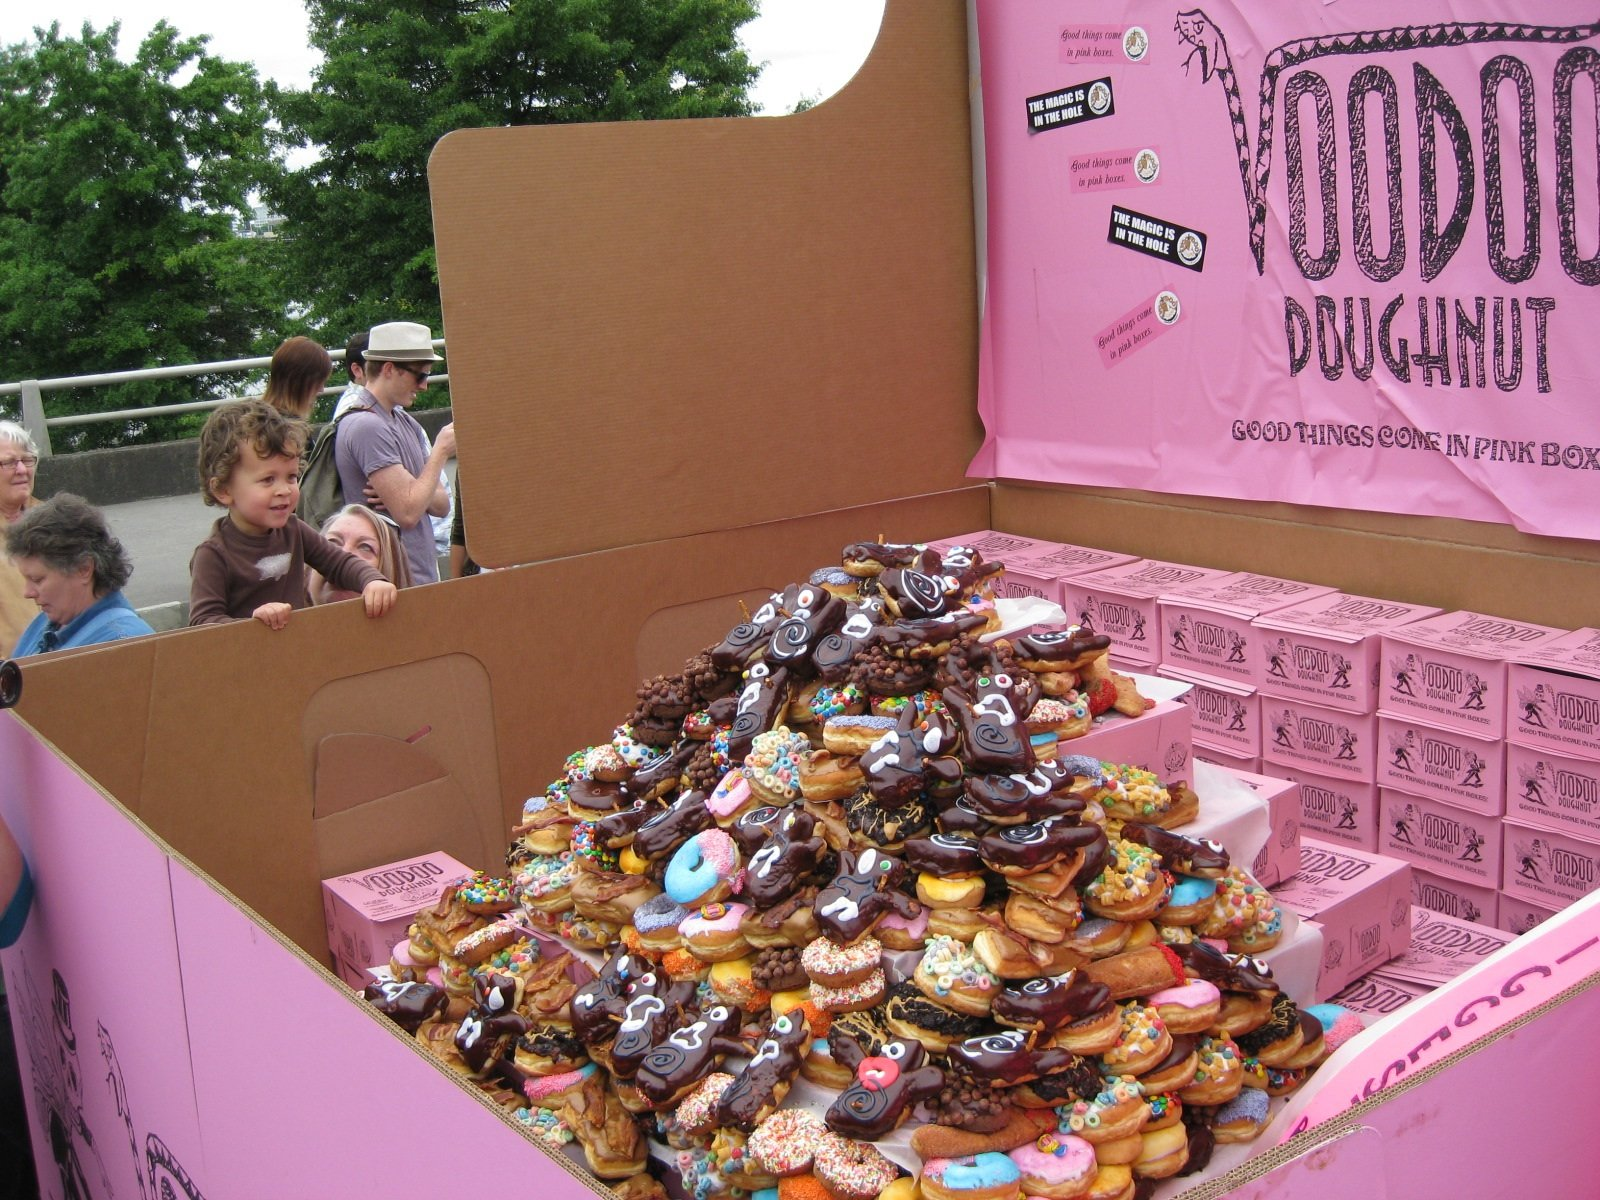 World's largest box of doughnuts weighs in at 666 pounds ...